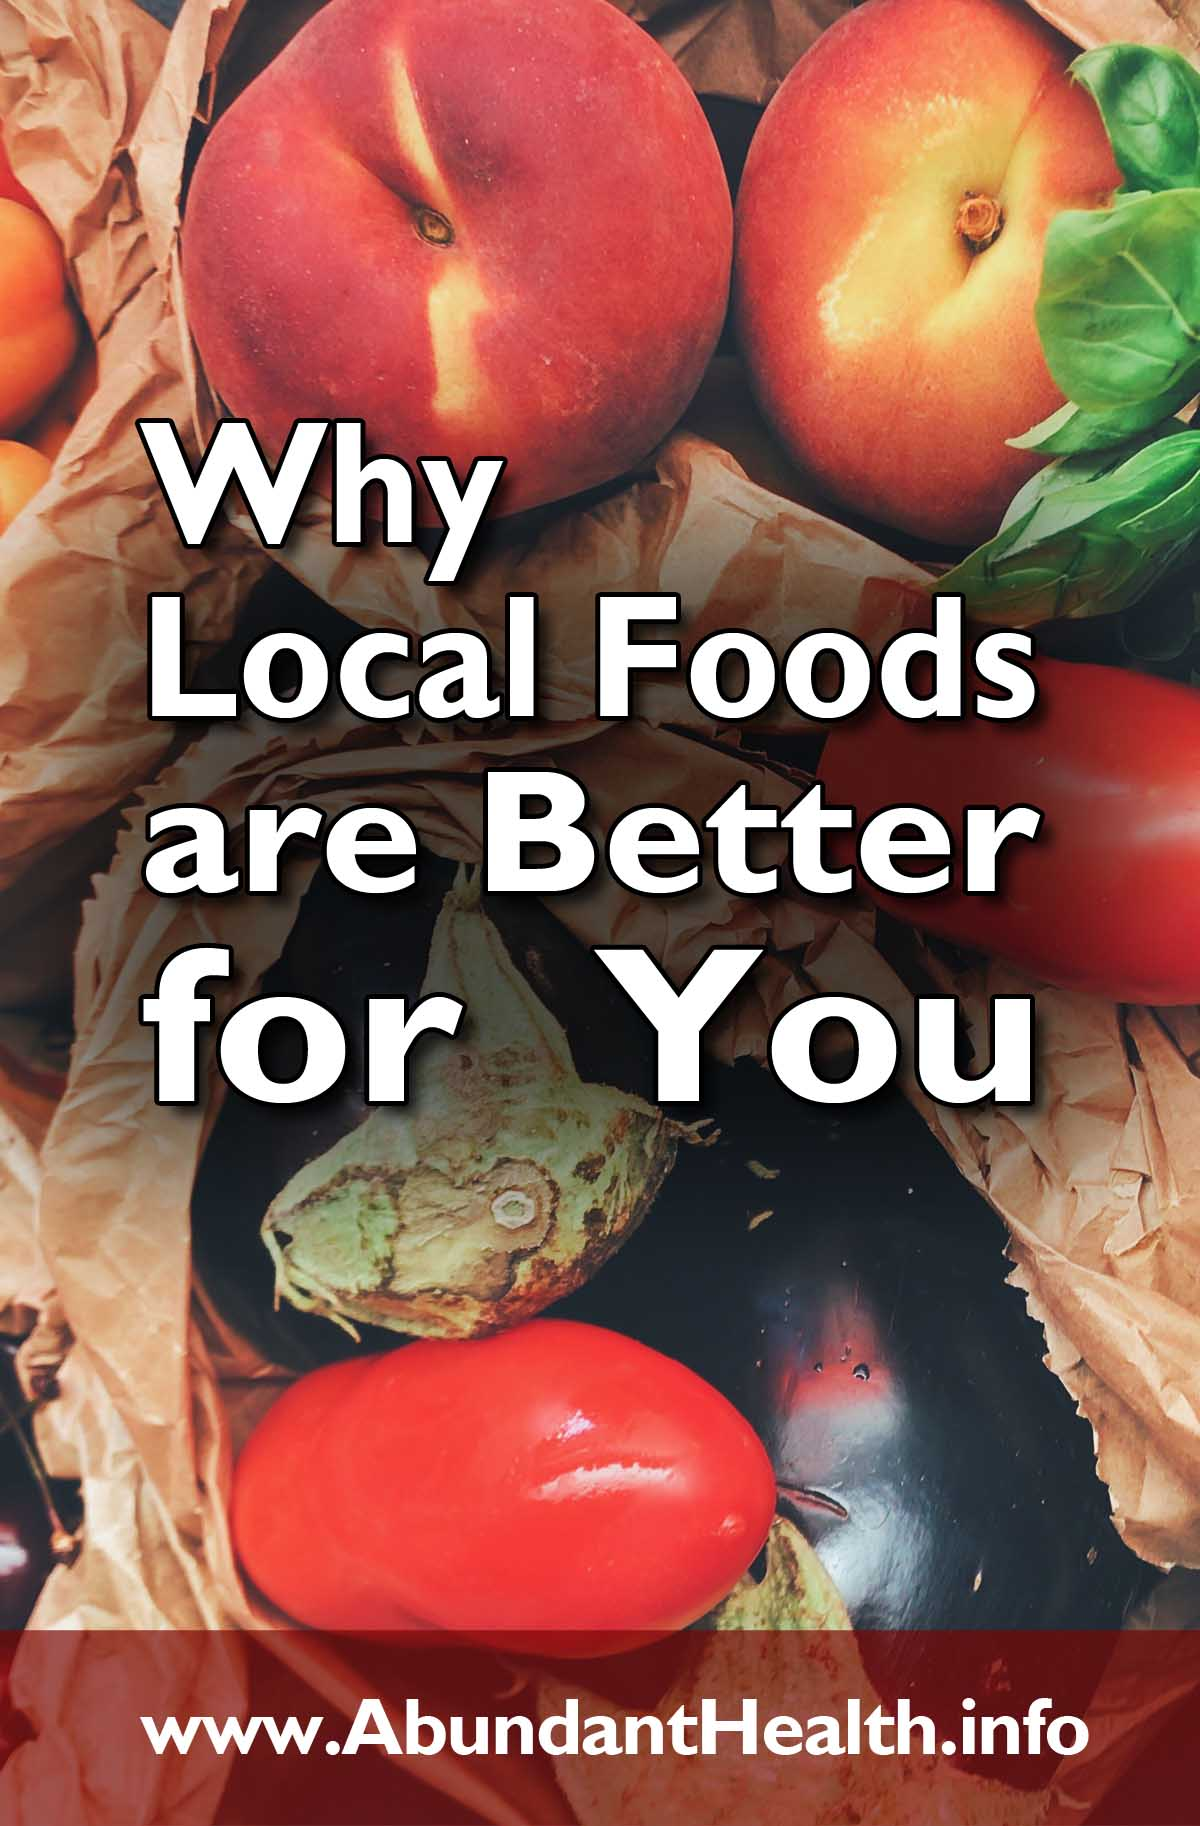 Why Local Foods are Better for You